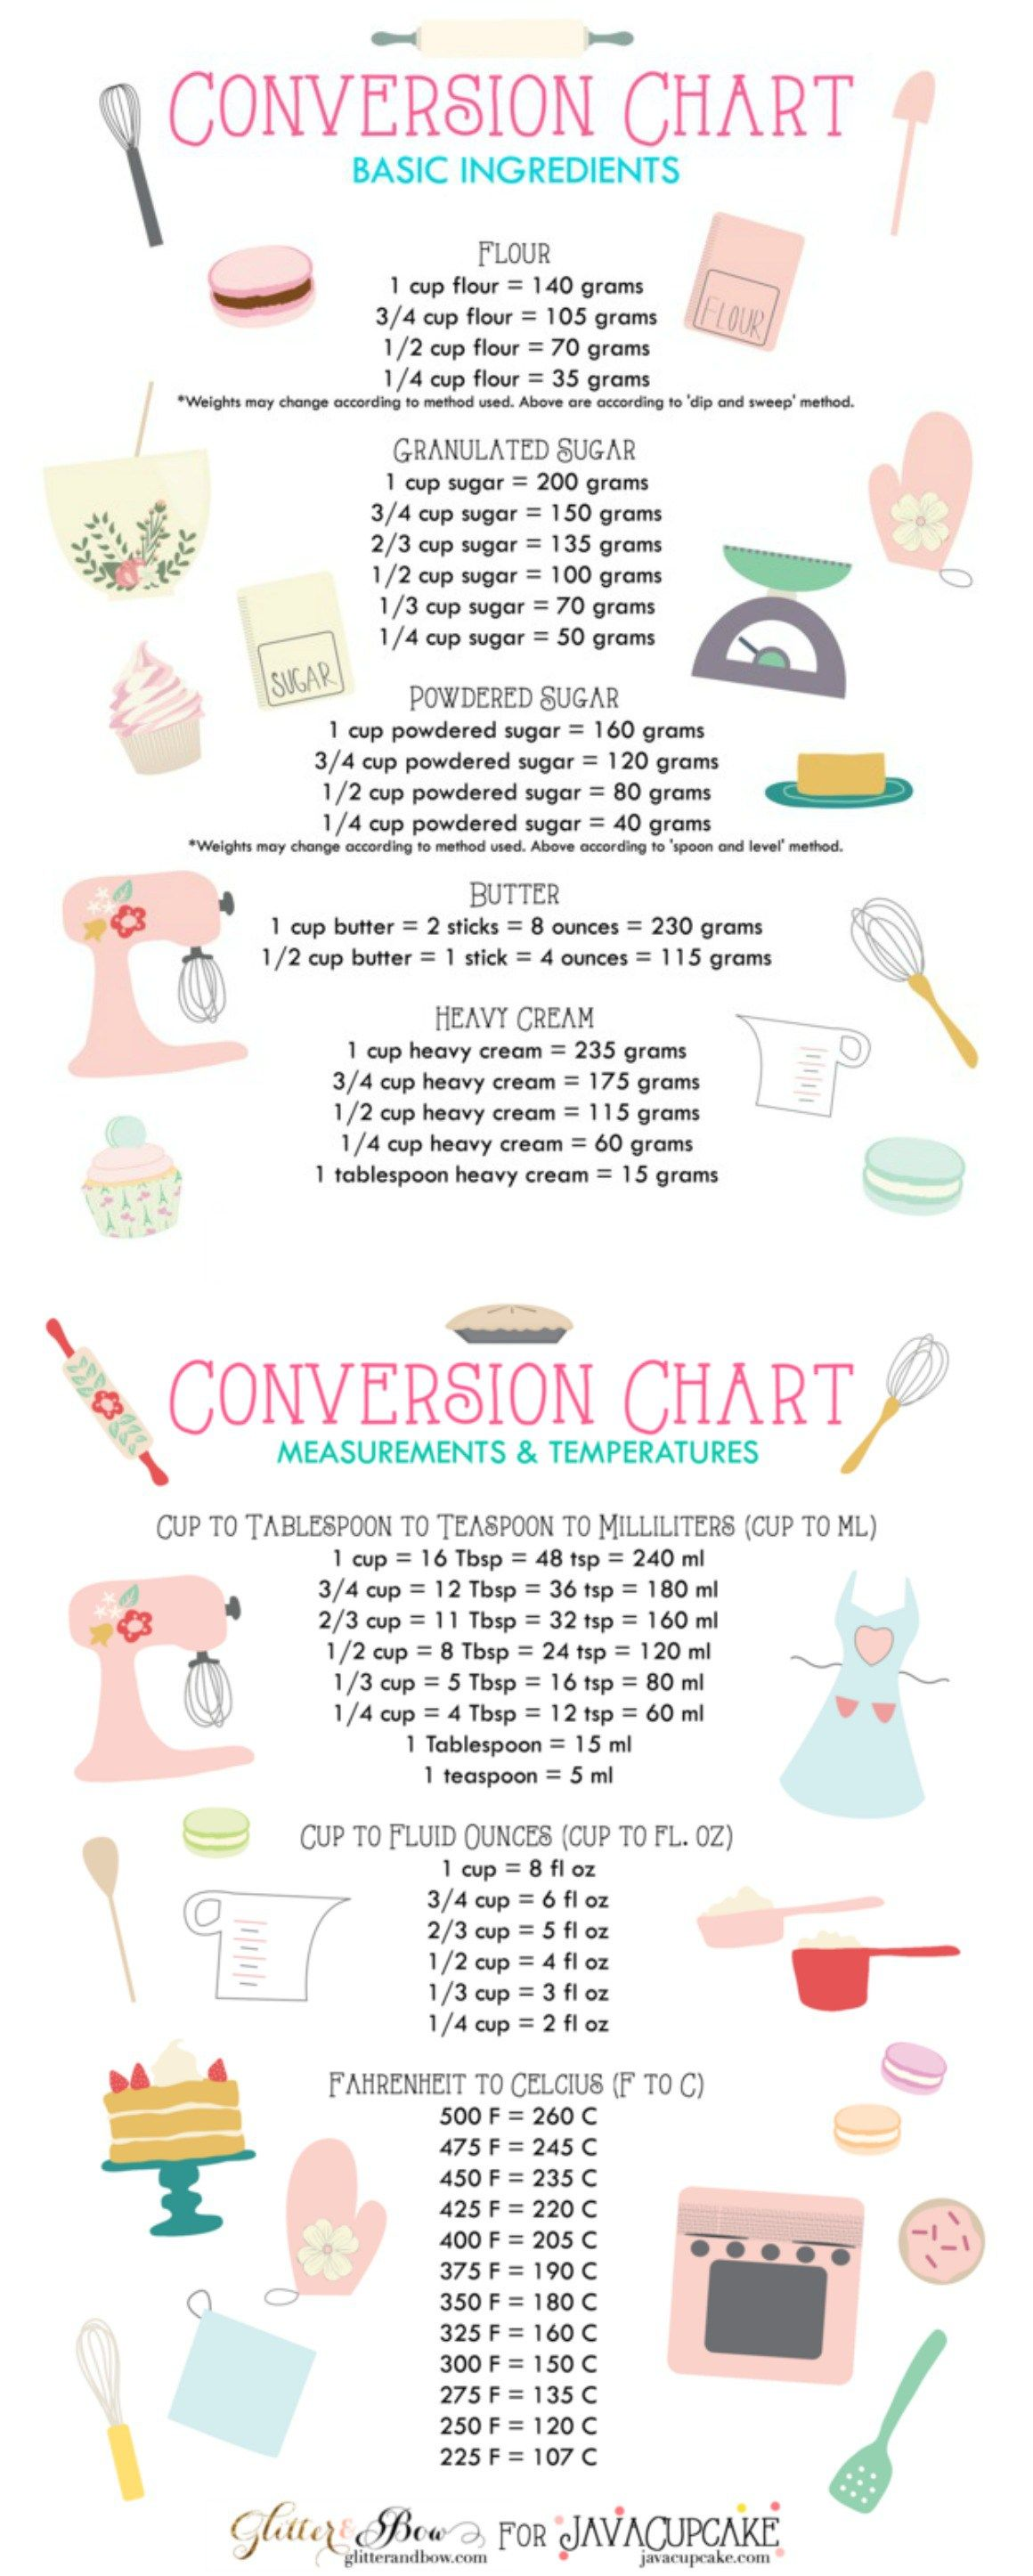 Conversion chart cooking wisdom pinterest cooking hacks food baking hacks conversion chart nvjuhfo Images